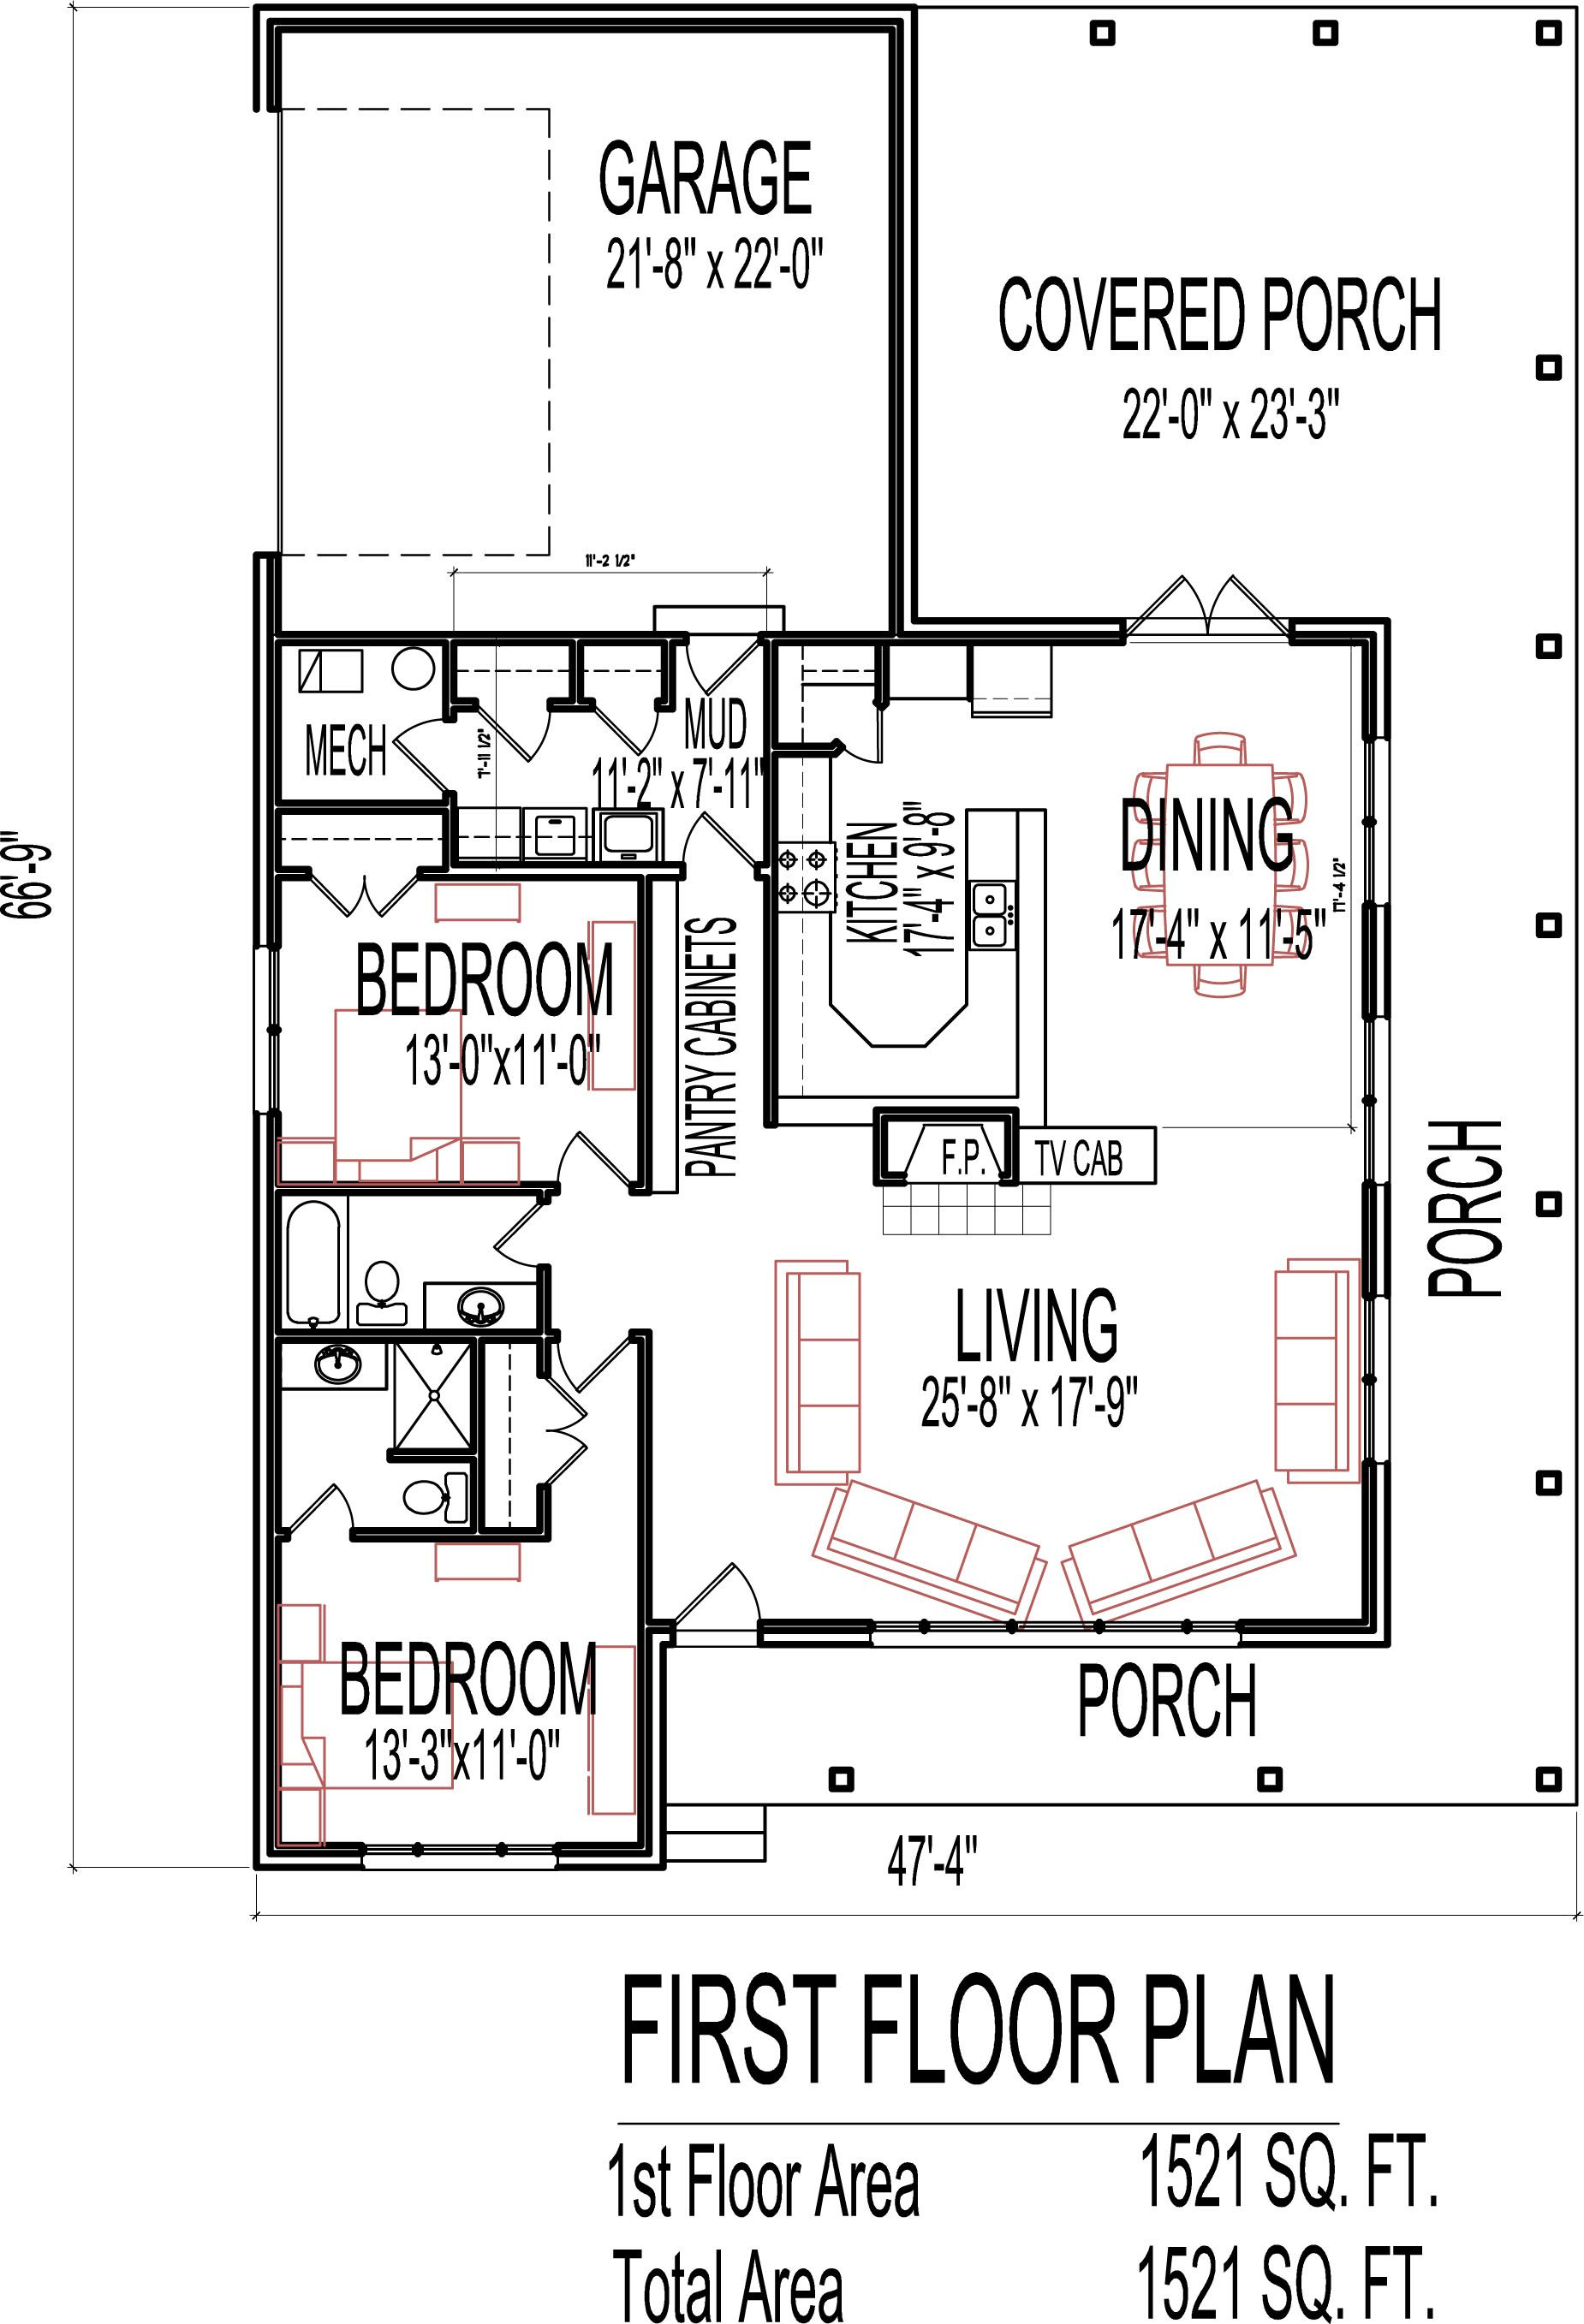 1 Story 2 Bedroom House Plans I think this may be the